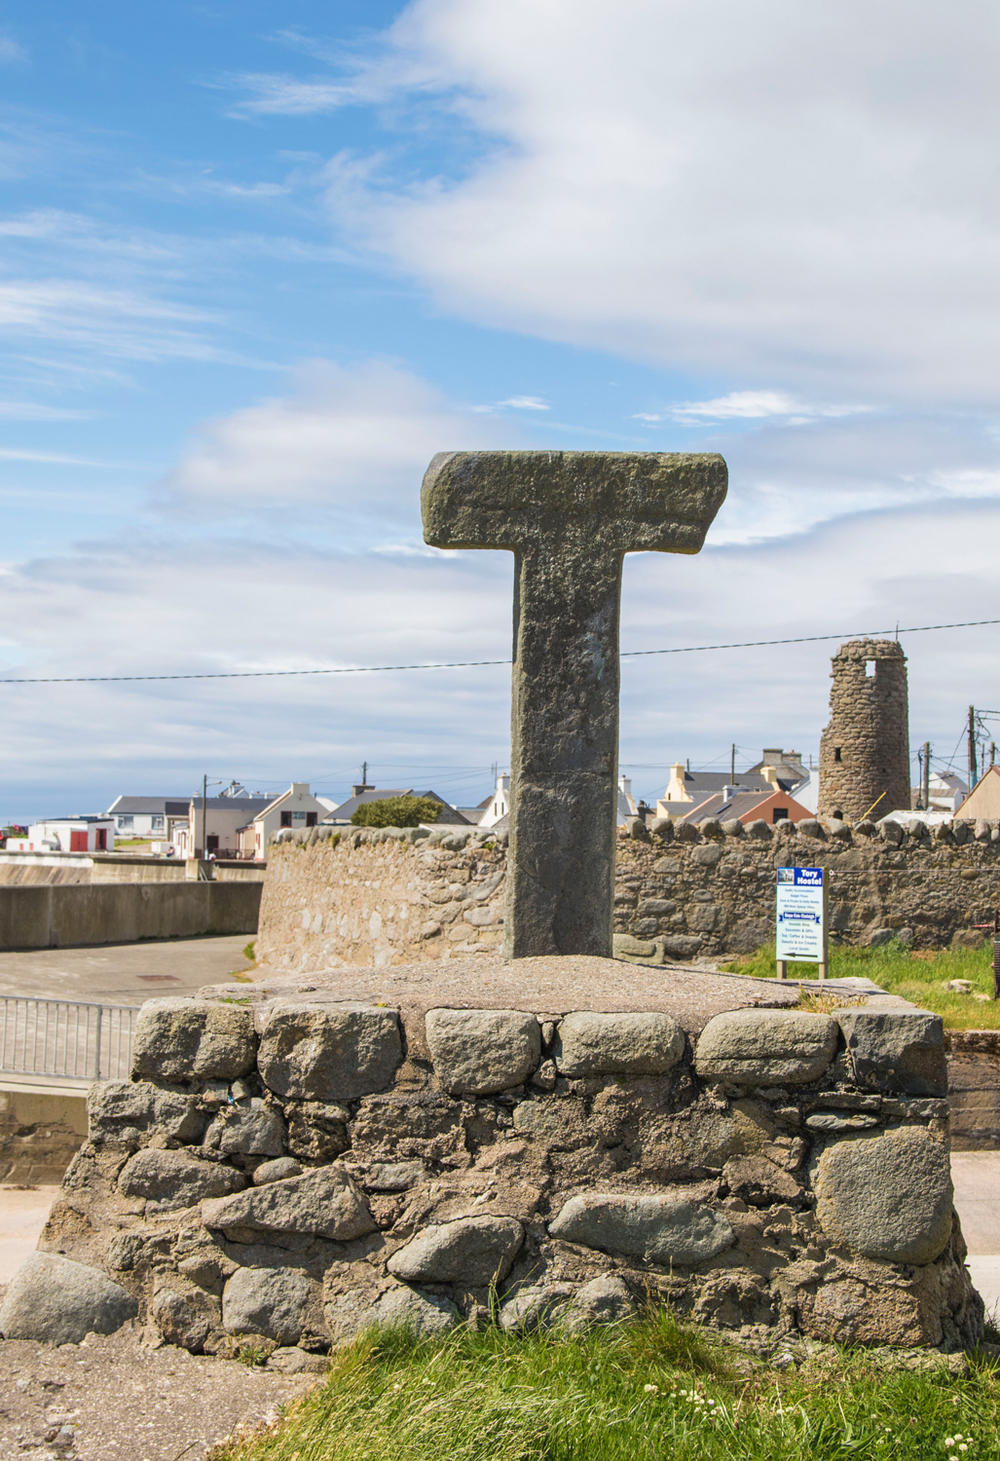 The Tau Cross and in the background, the remains of the Monastery bell tower.